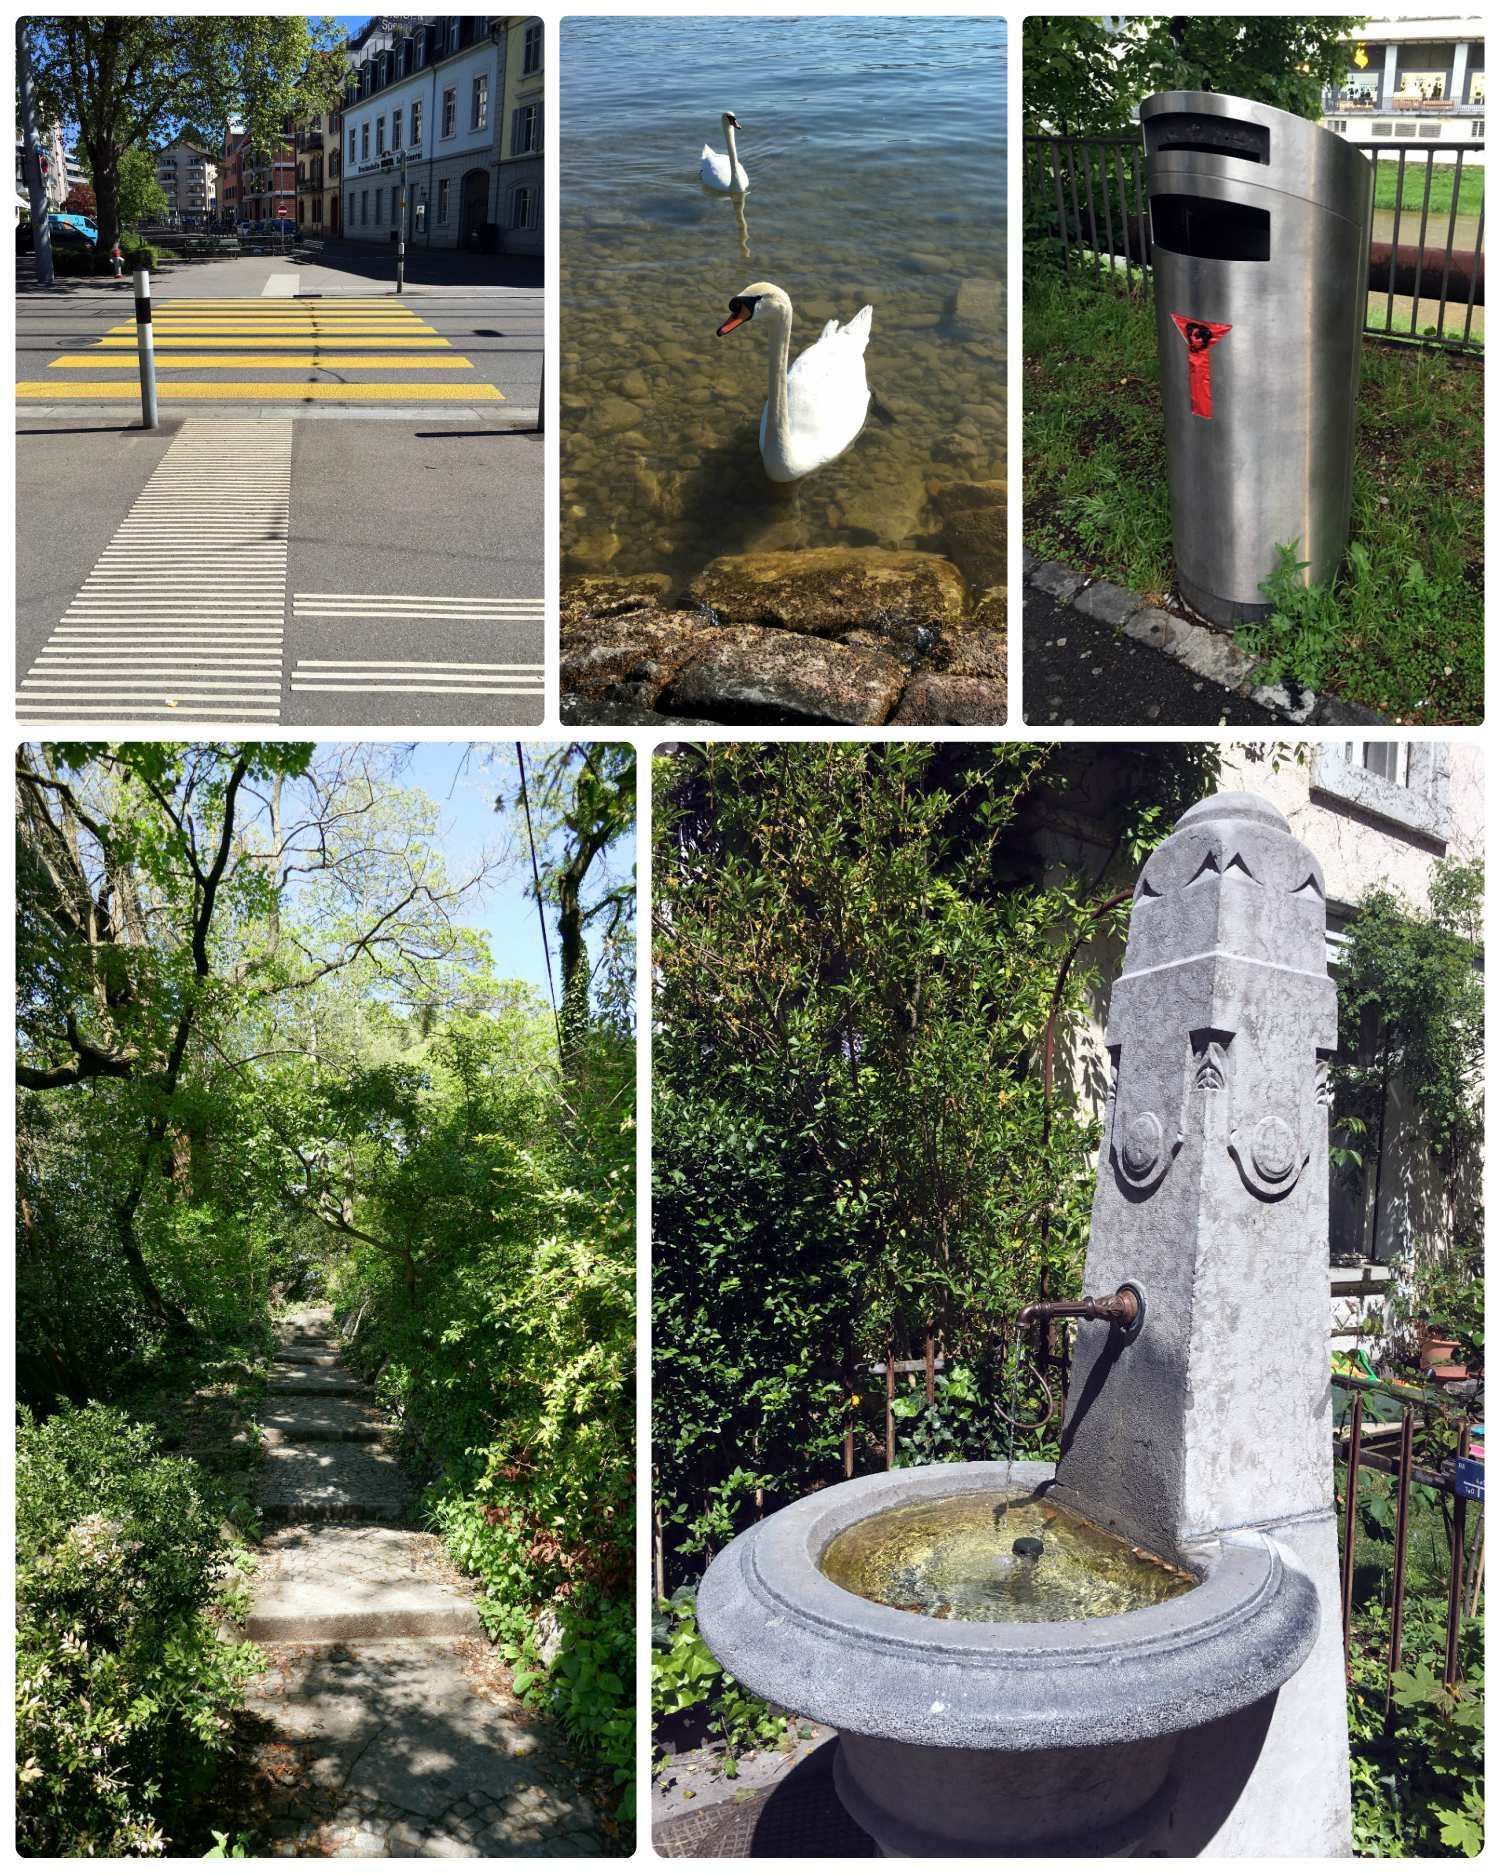 Clockwise (from the top): The paint on the street markings was bright and well defined, we saw more swans on Zurich Lake than we've seen anywhere else so far, a view into a beautiful green park, one of the  1200 fountains  around Zurich.